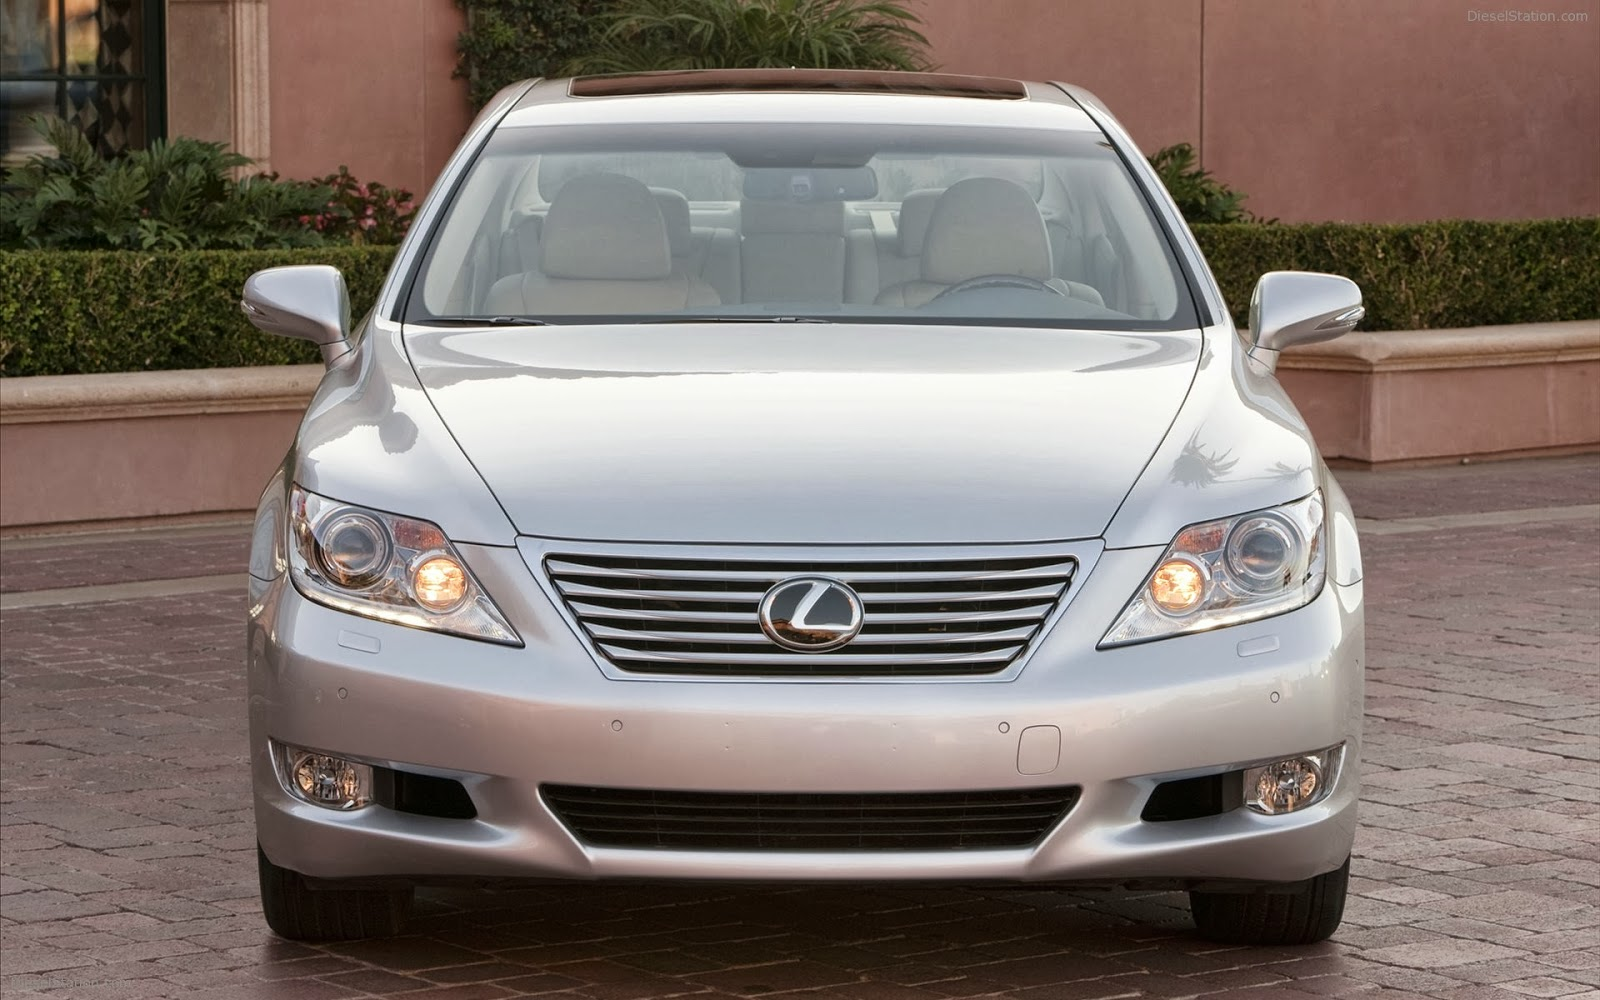 2014 lexus ls 460 l car prices pictures prices features wallpapers. Black Bedroom Furniture Sets. Home Design Ideas